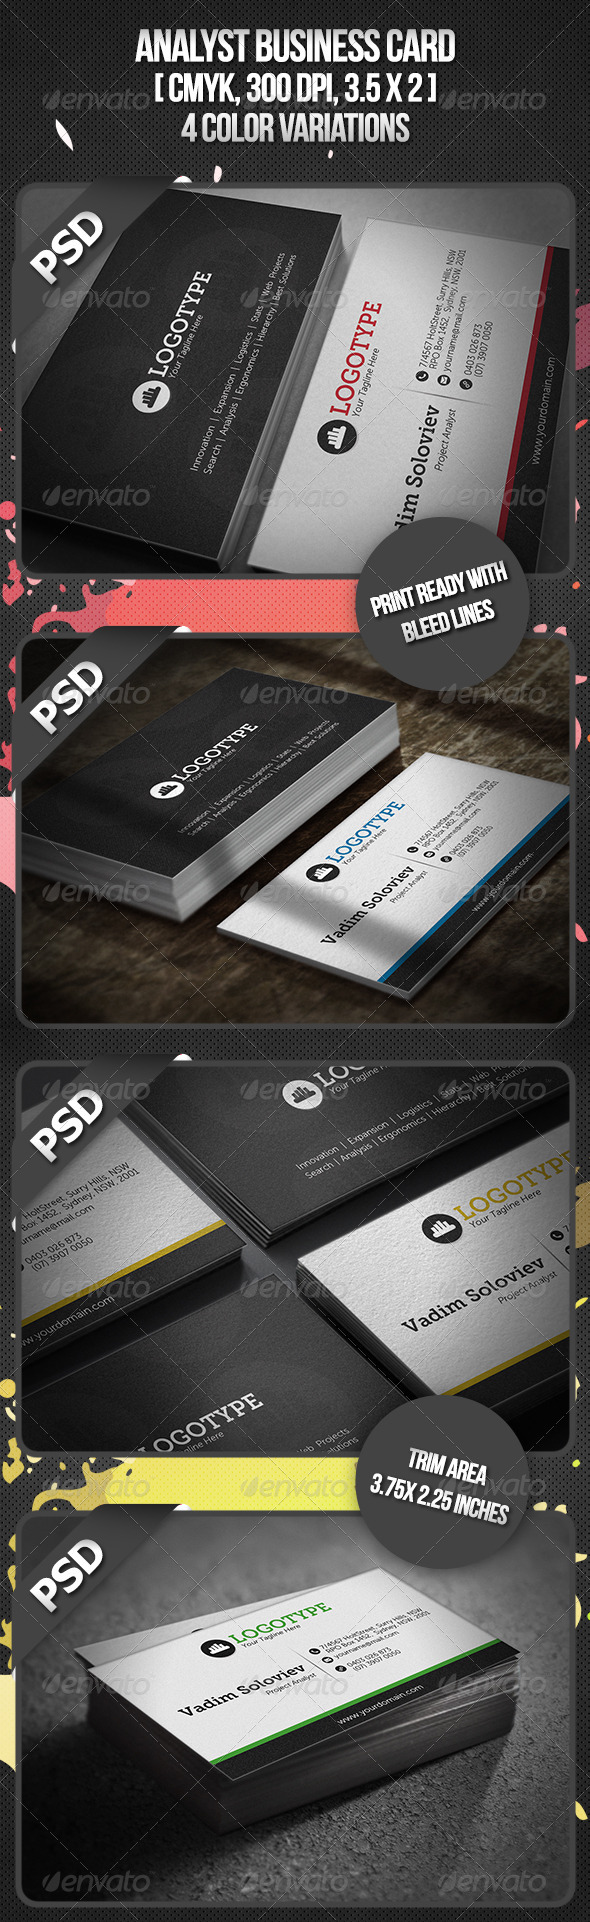 Analyst Business Card - Business Cards Print Templates